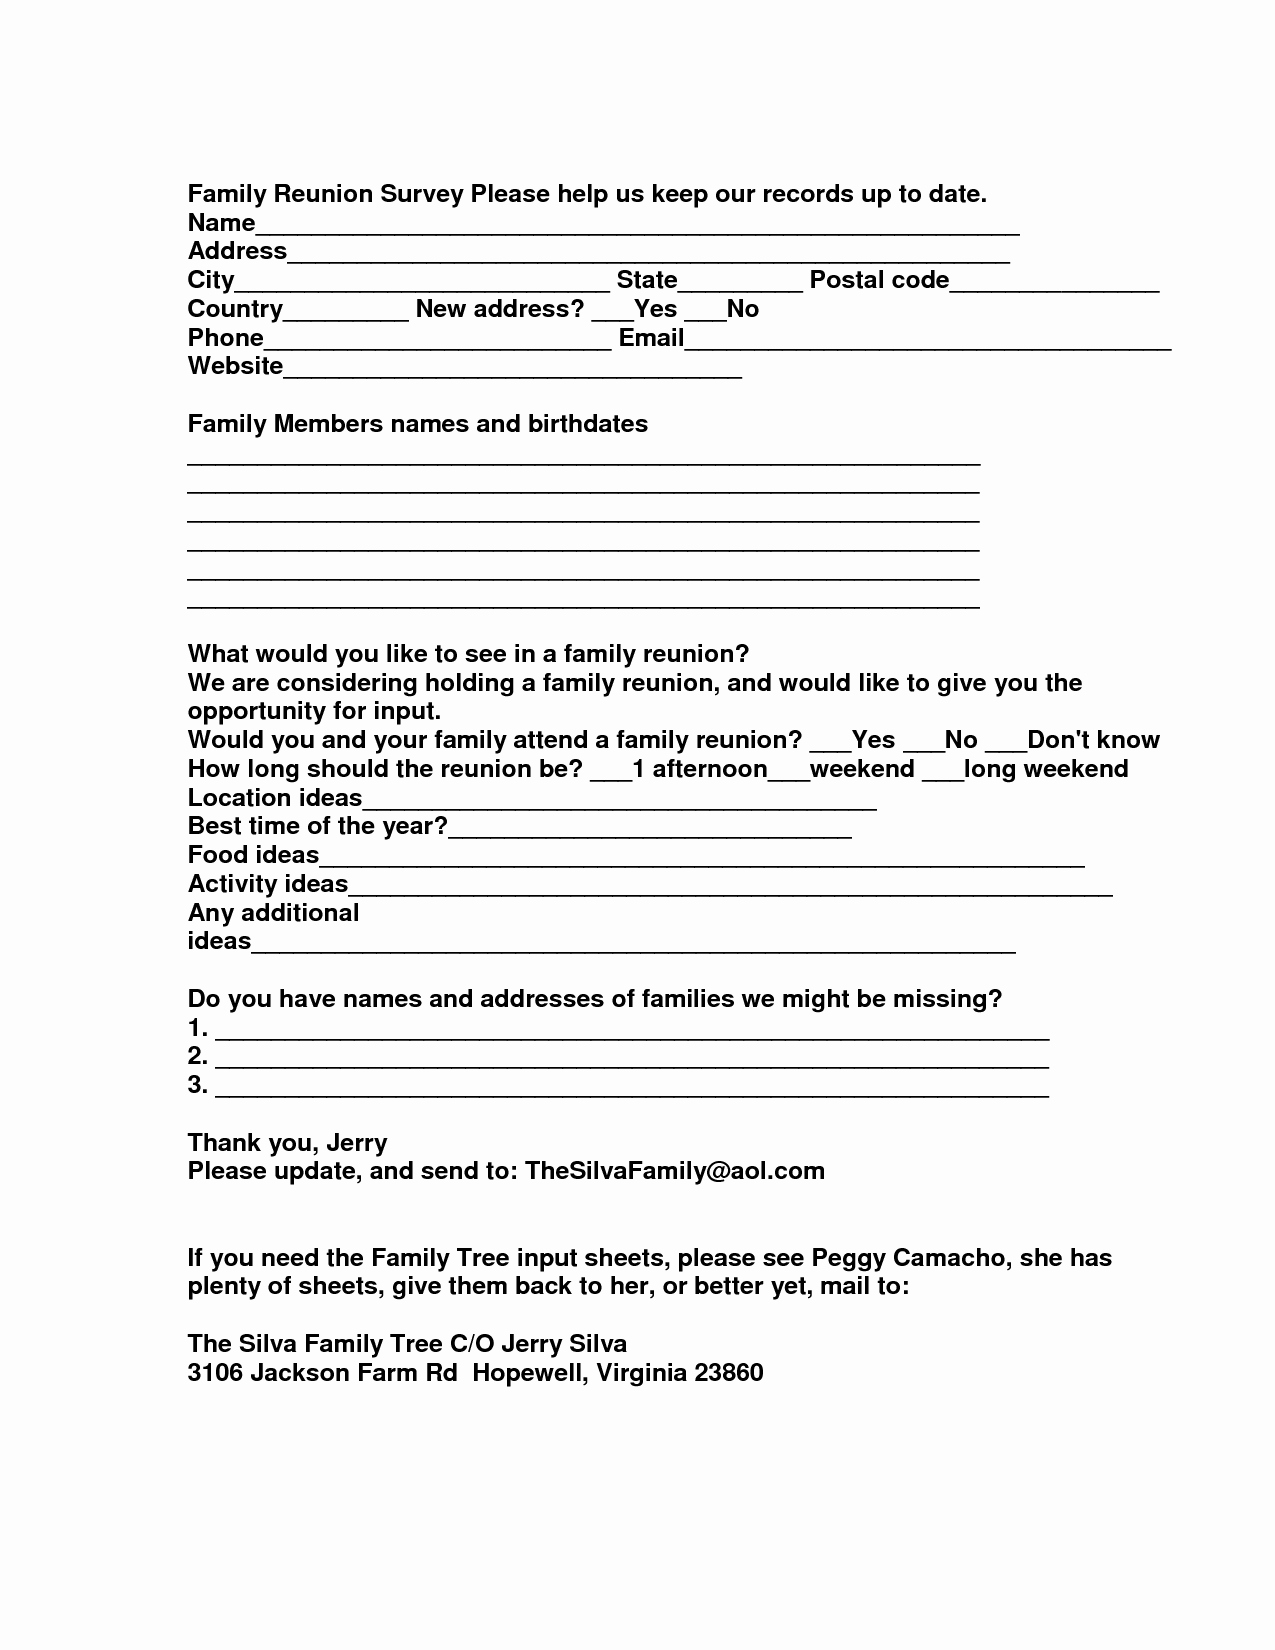 Family Reunion Letters Template Luxury Family Reunion Interest Letter to Pin On